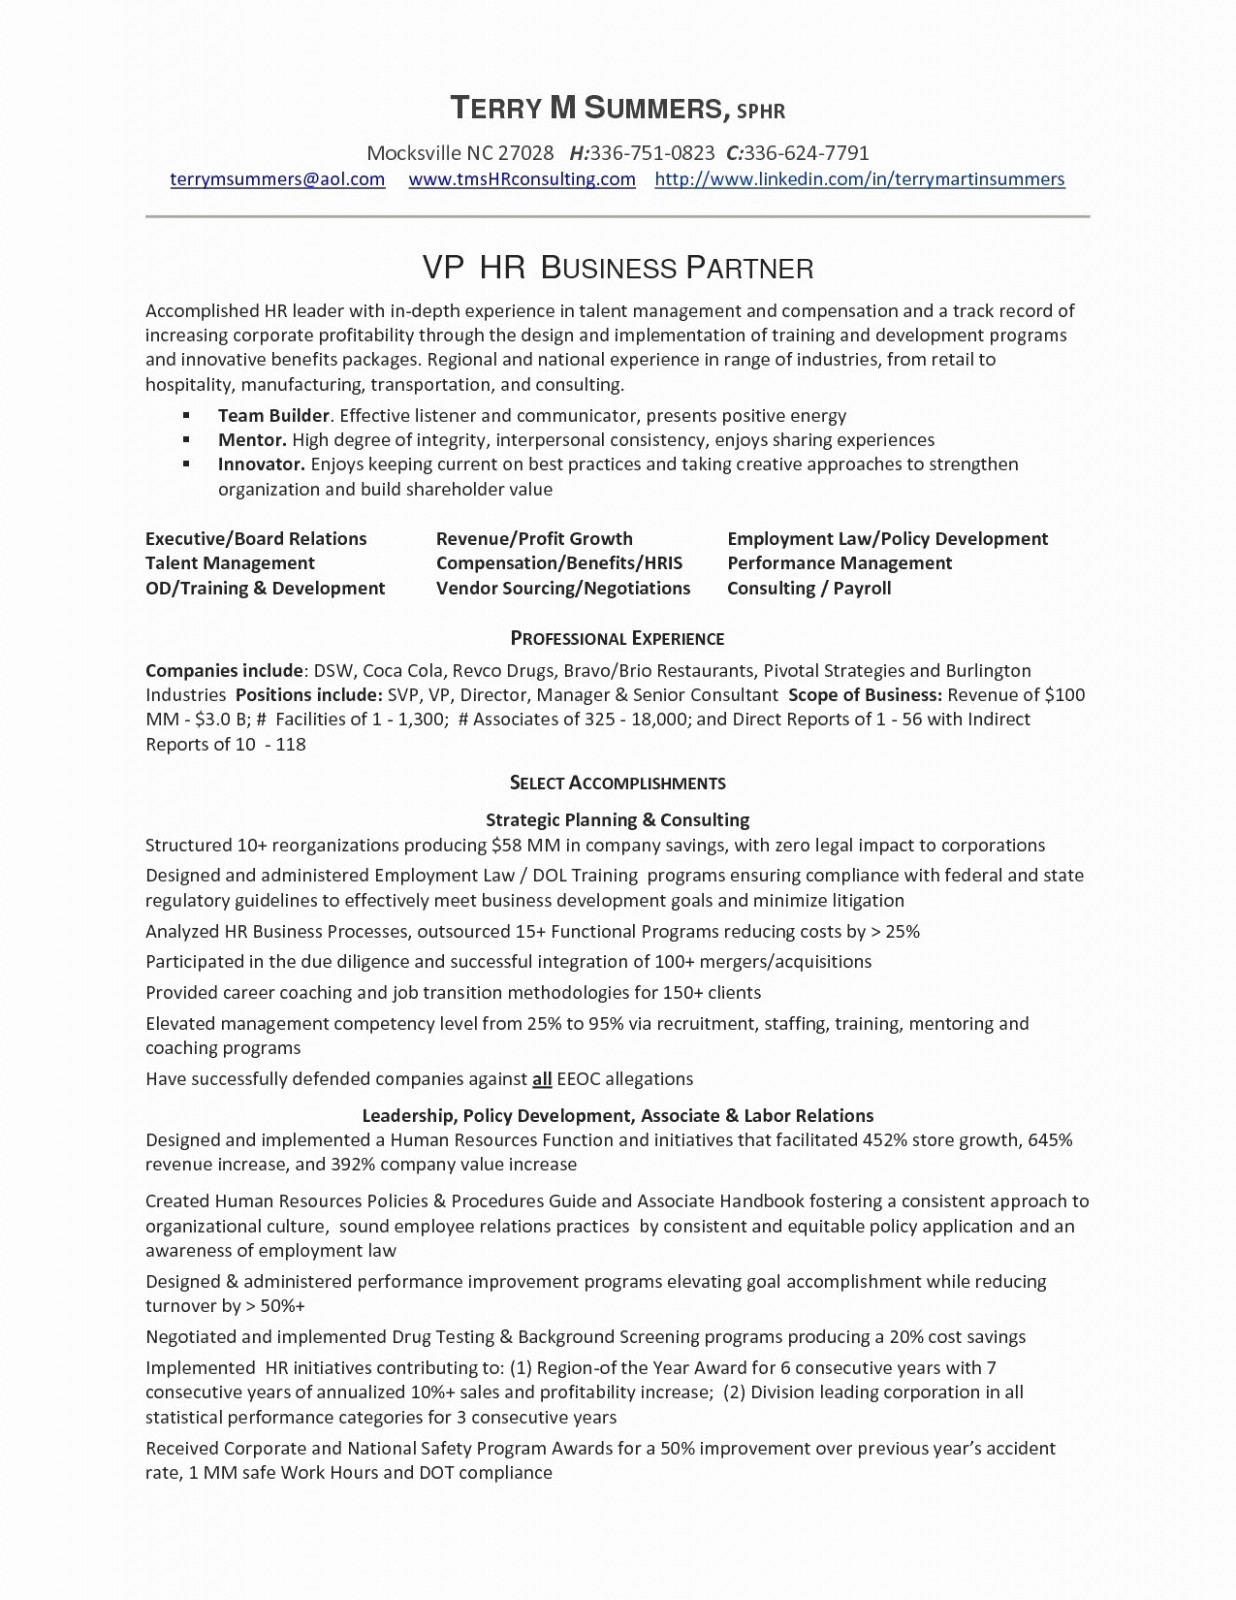 property manager resume sample example-Property Management Resume Examples Reference Property Manager Resume Example — Resumes Project 12-n